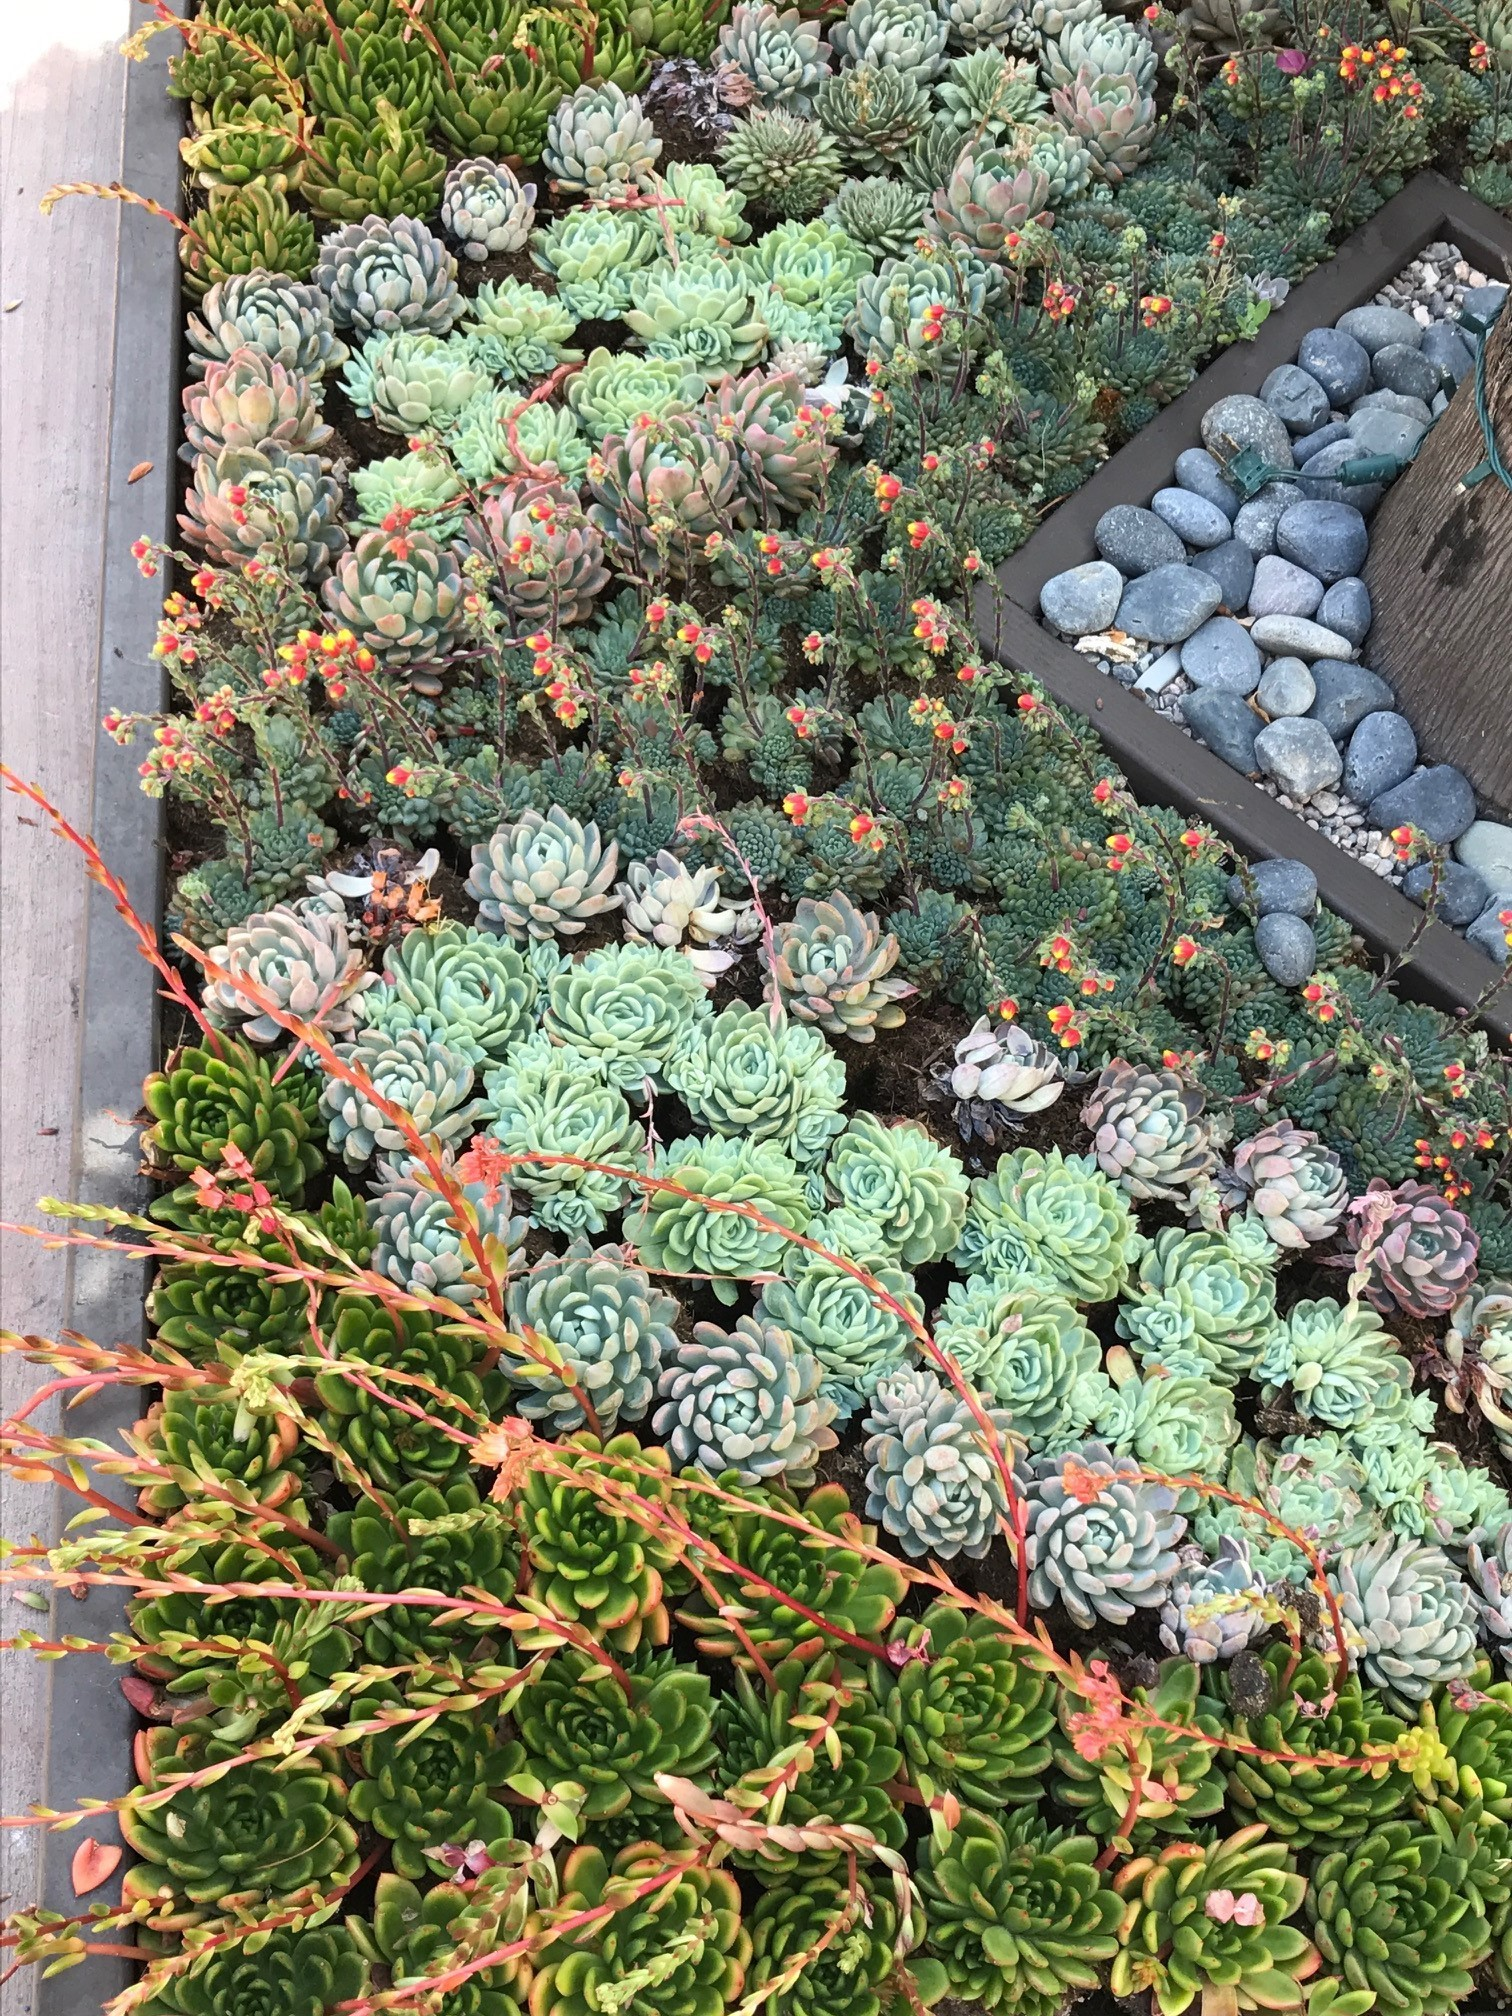 A succulent display at Flower Hill.